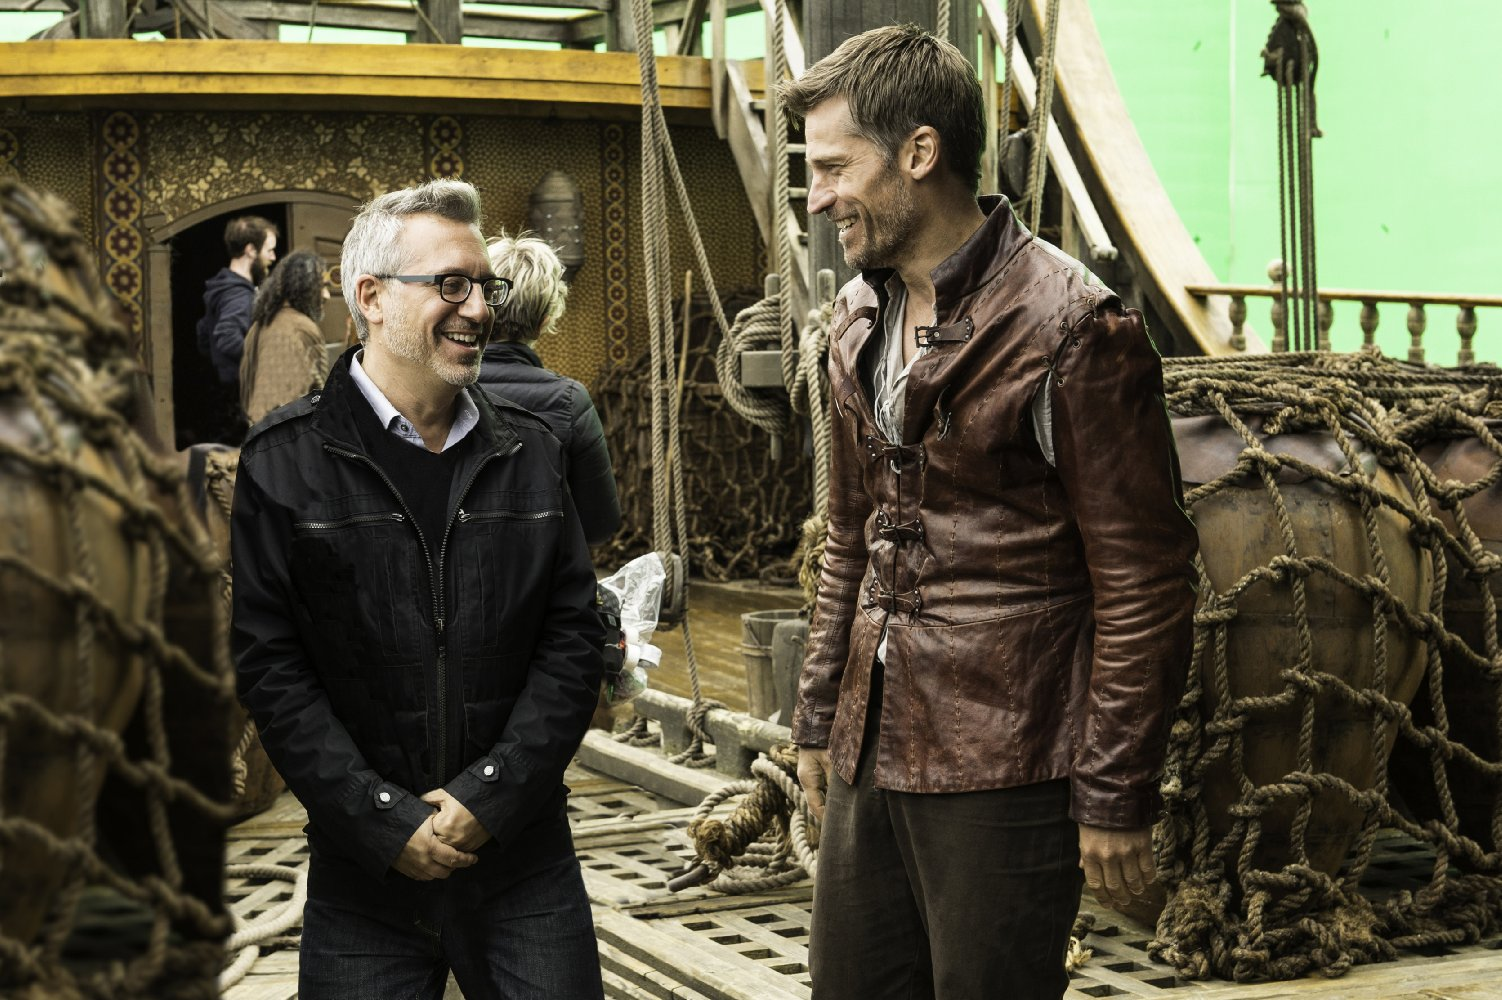 """Jeremy Podeswa, left, with Nikolaj Coster-Waldau on the set of episode 1 of season 6, """"The Red Woman,"""" in 2016."""